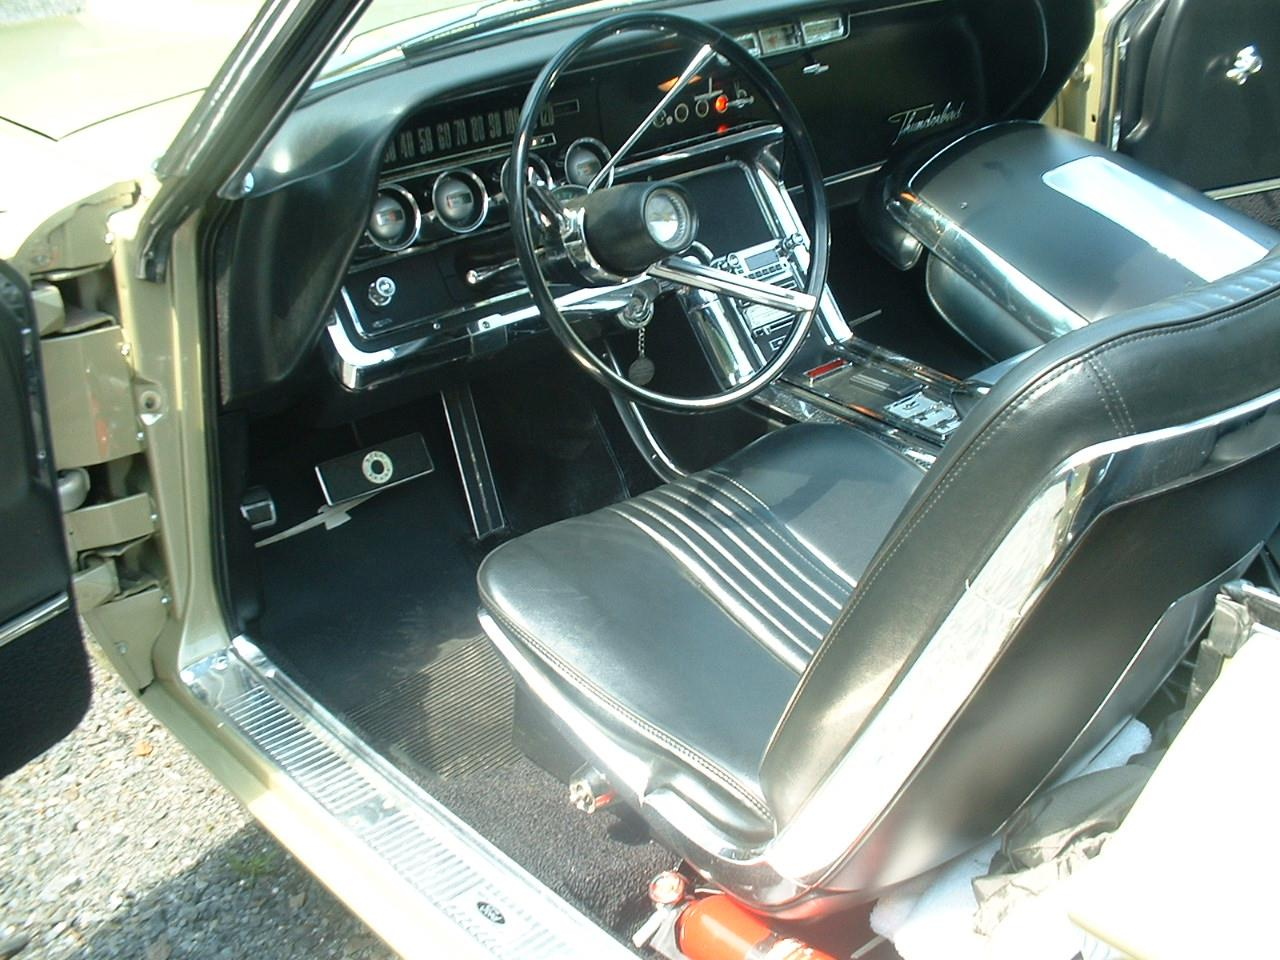 Large Picture of '66 Ford Thunderbird located in WINDSOR Quebec - $59,500.00 Offered by a Private Seller - FZQS